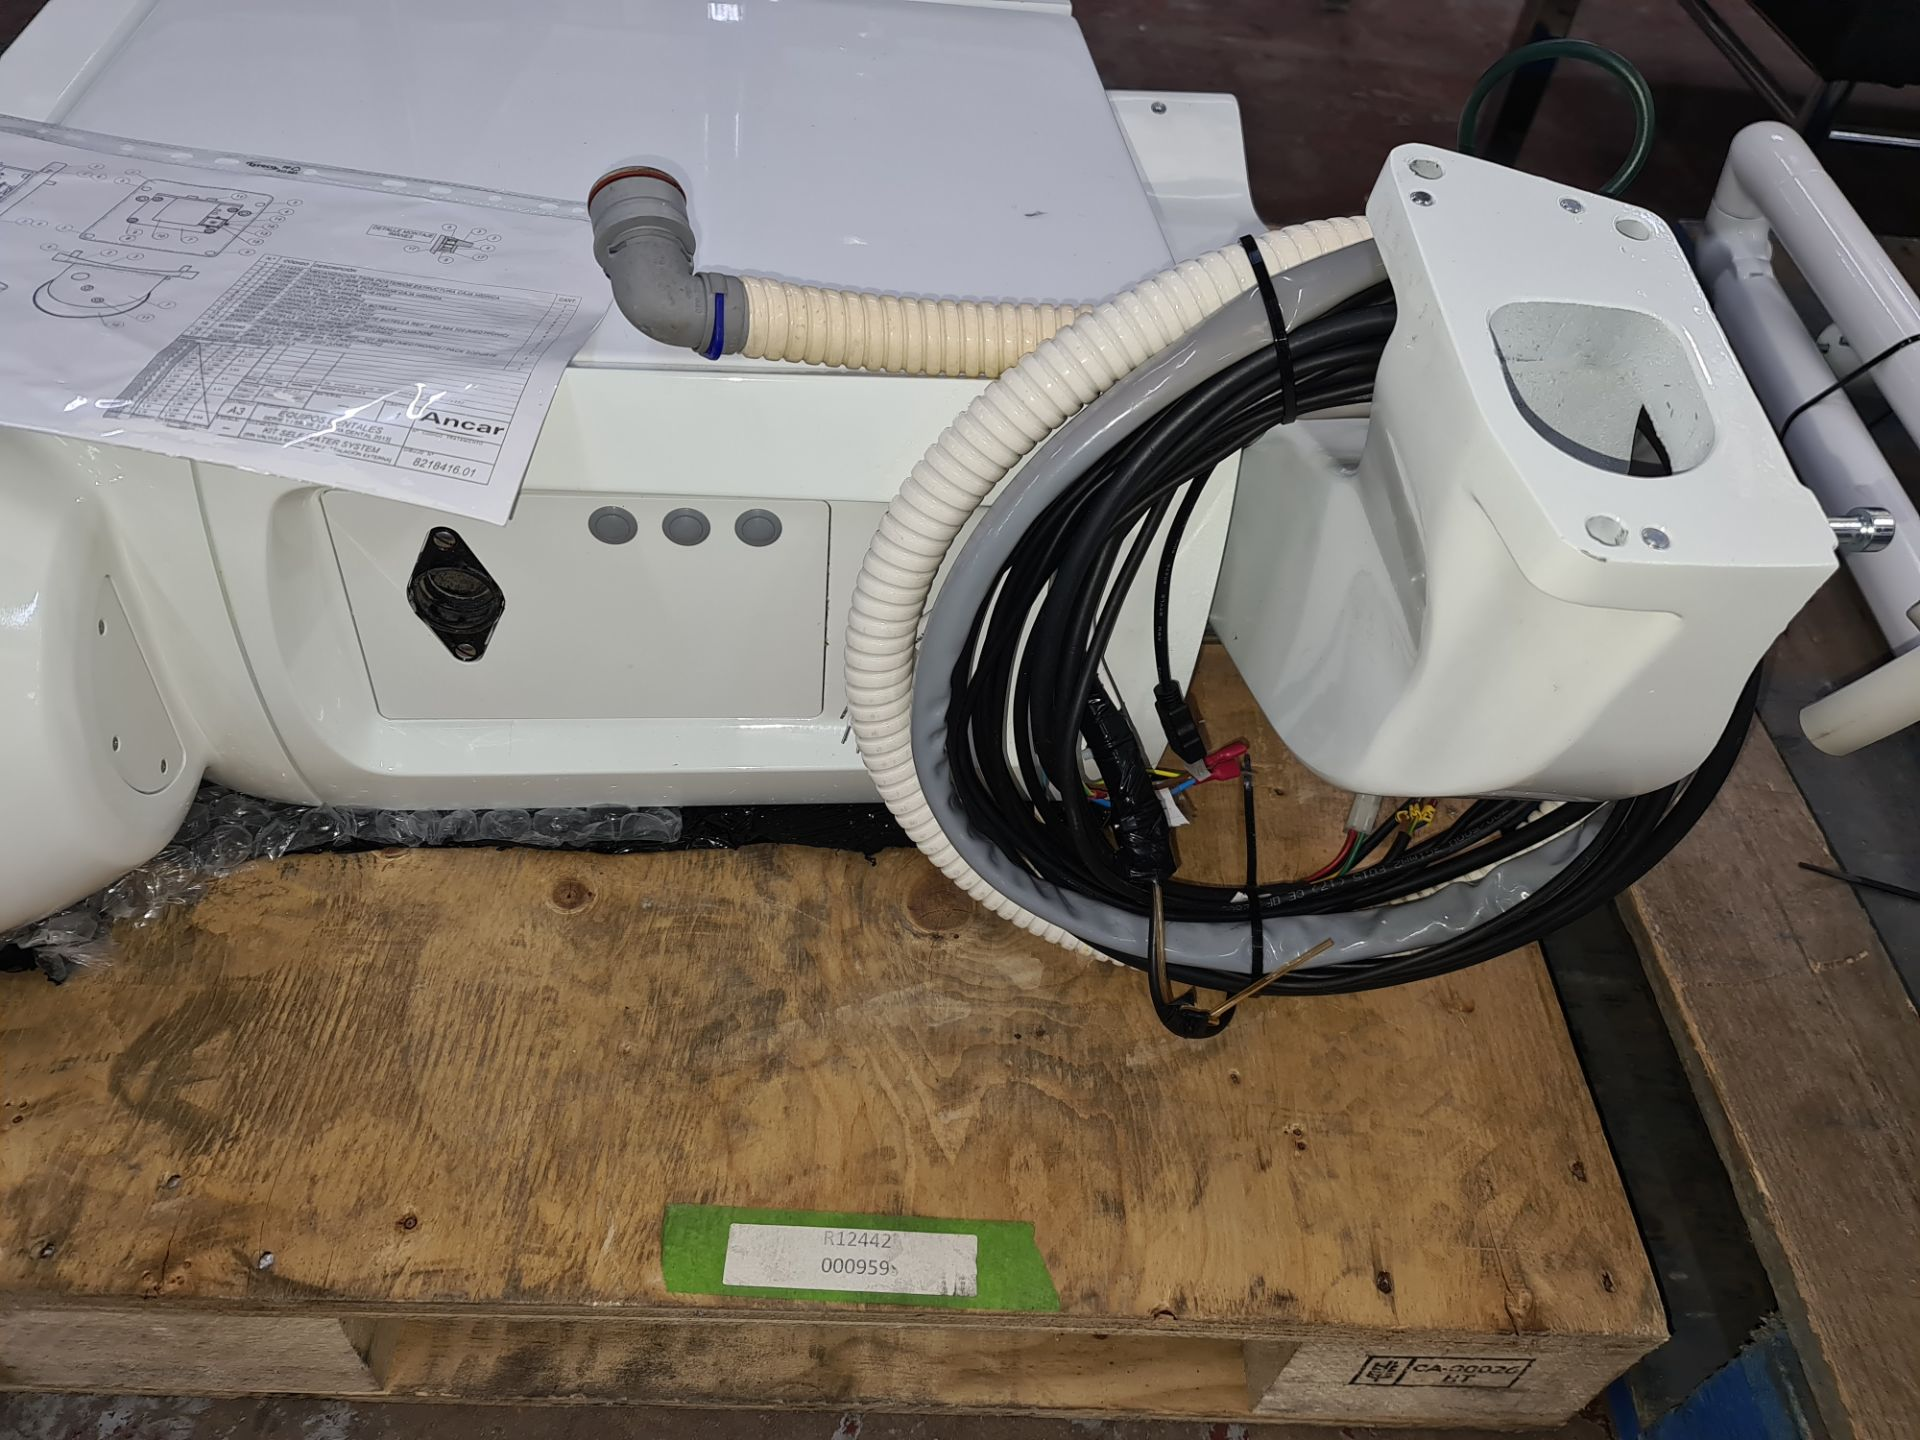 Ancar model SD-175 electro pneumatic dental chair & treatment centre unit with hanging hoses system - Image 9 of 24